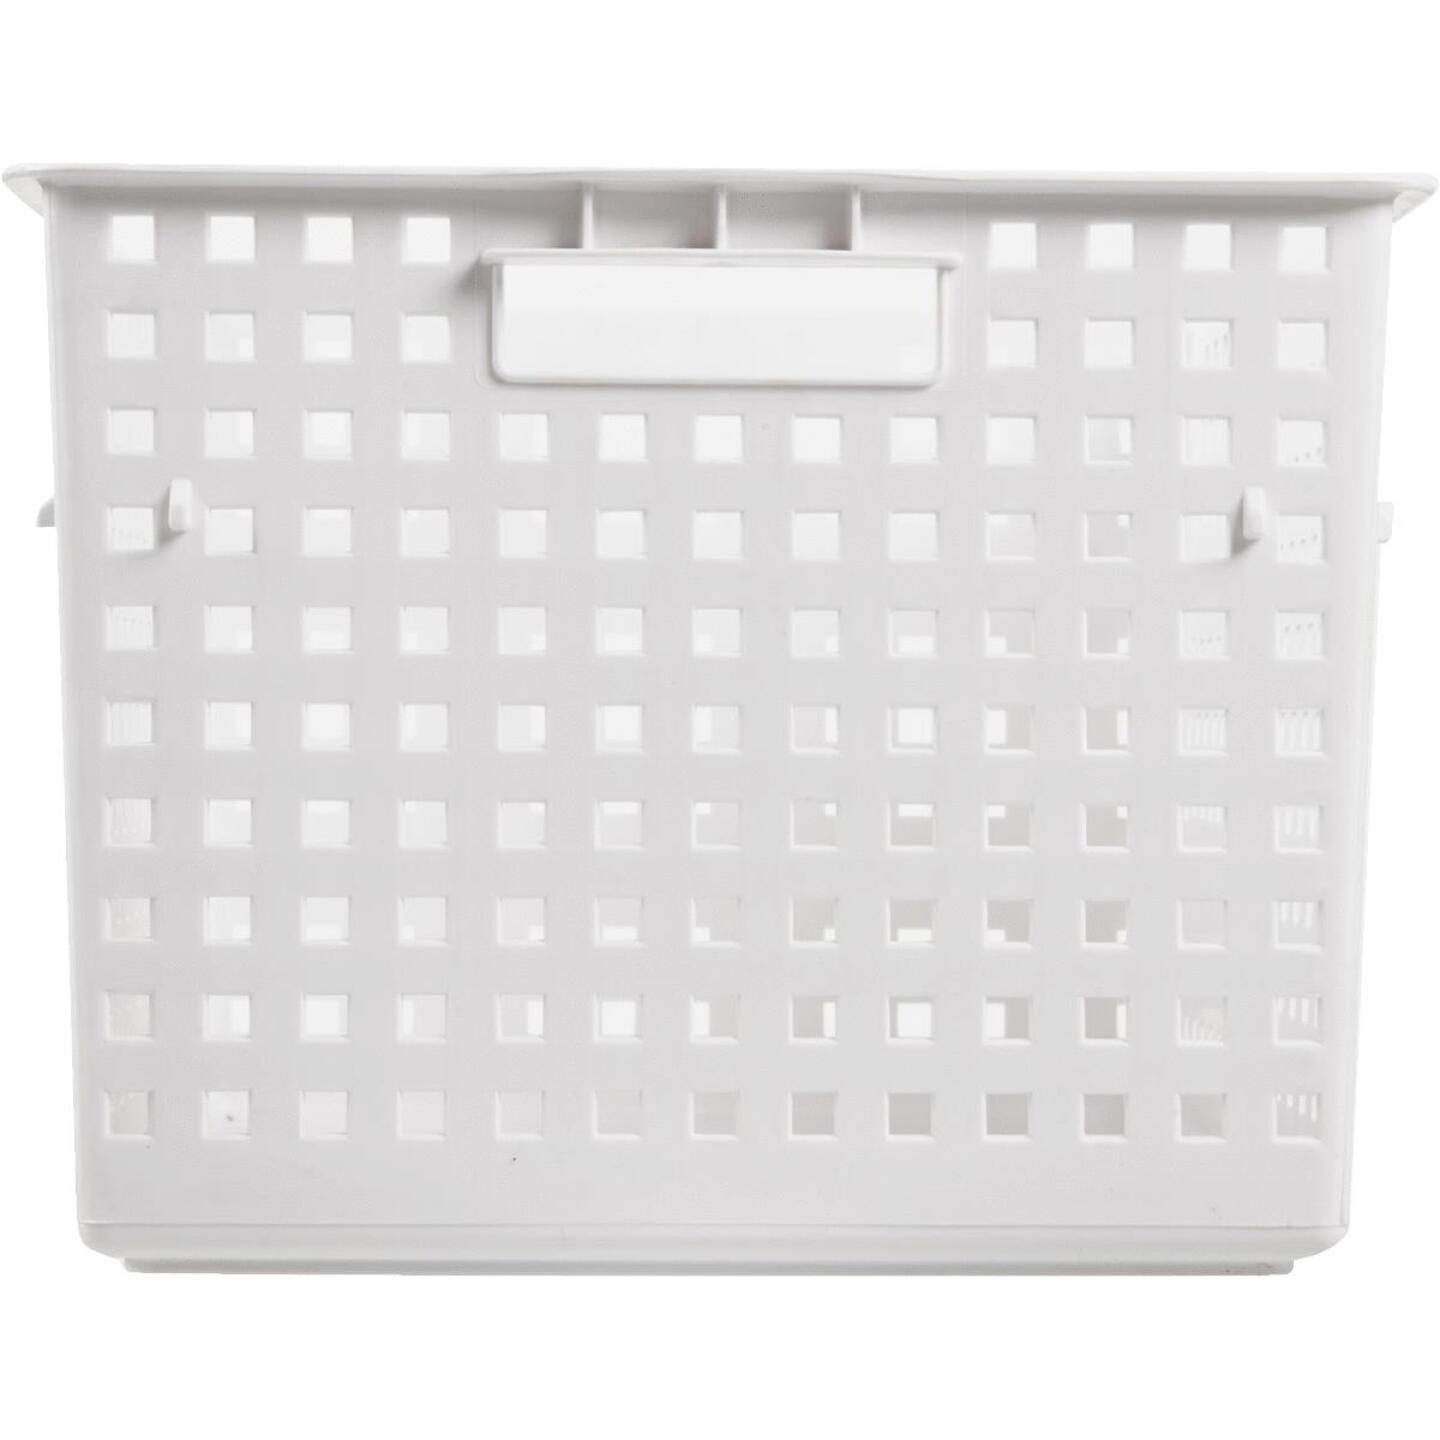 InterDesign Modulon X8 Storage Basket Image 2